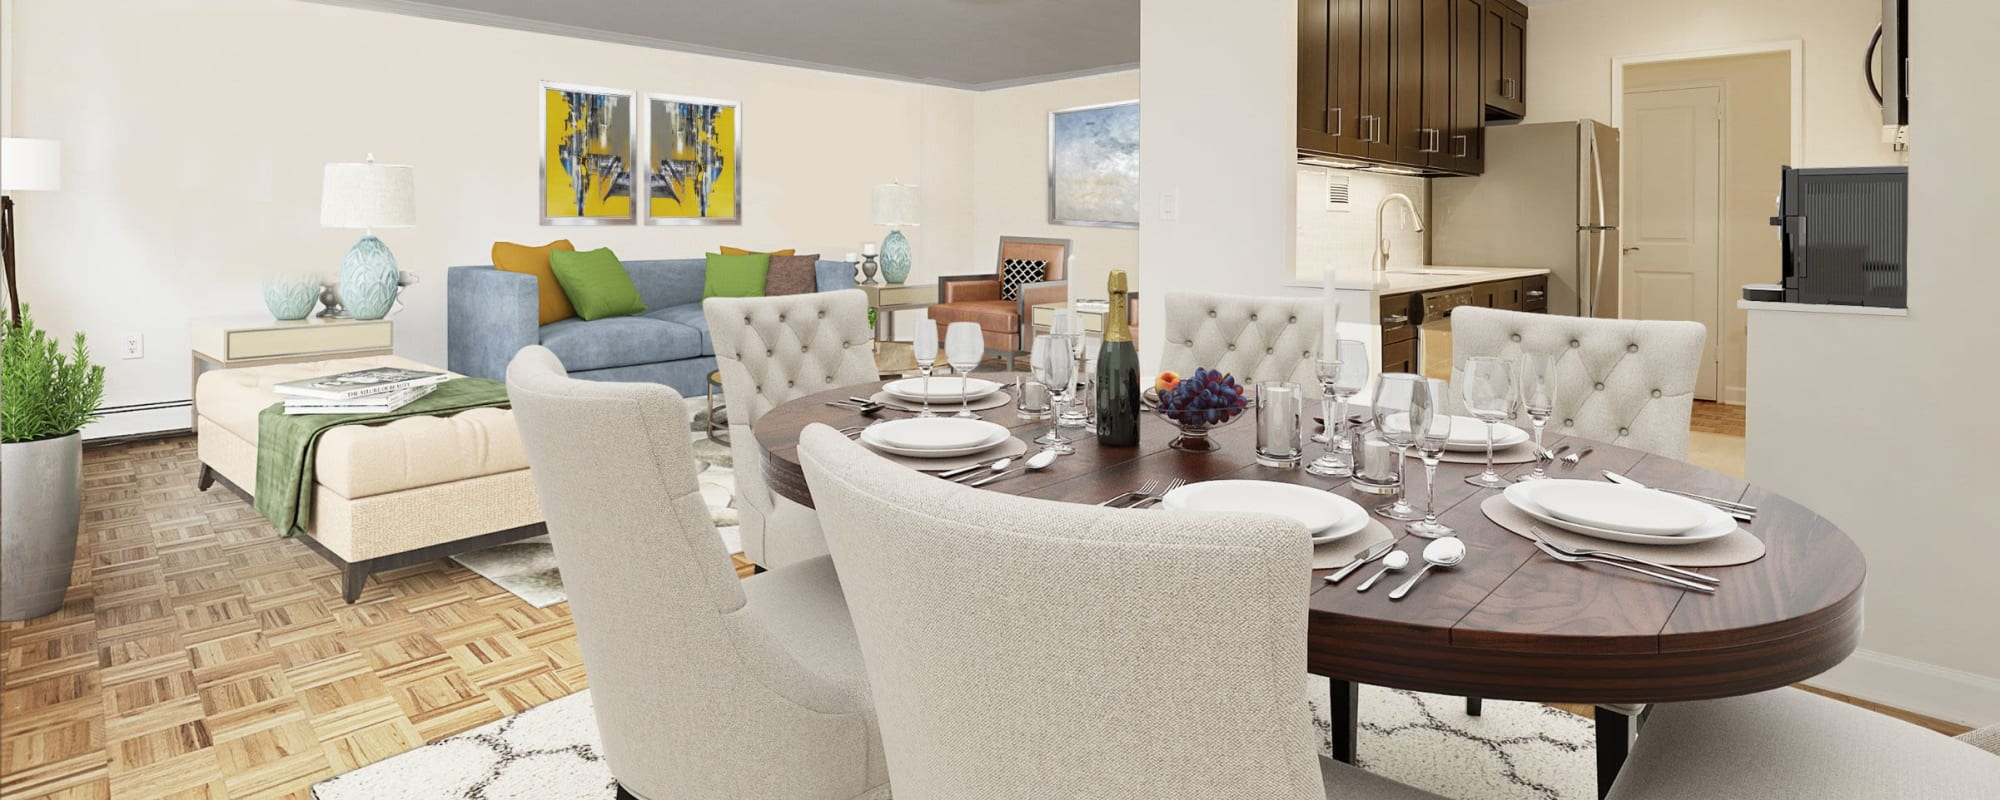 Schedule a tour to see Hamilton Court in Morristown, New Jersey